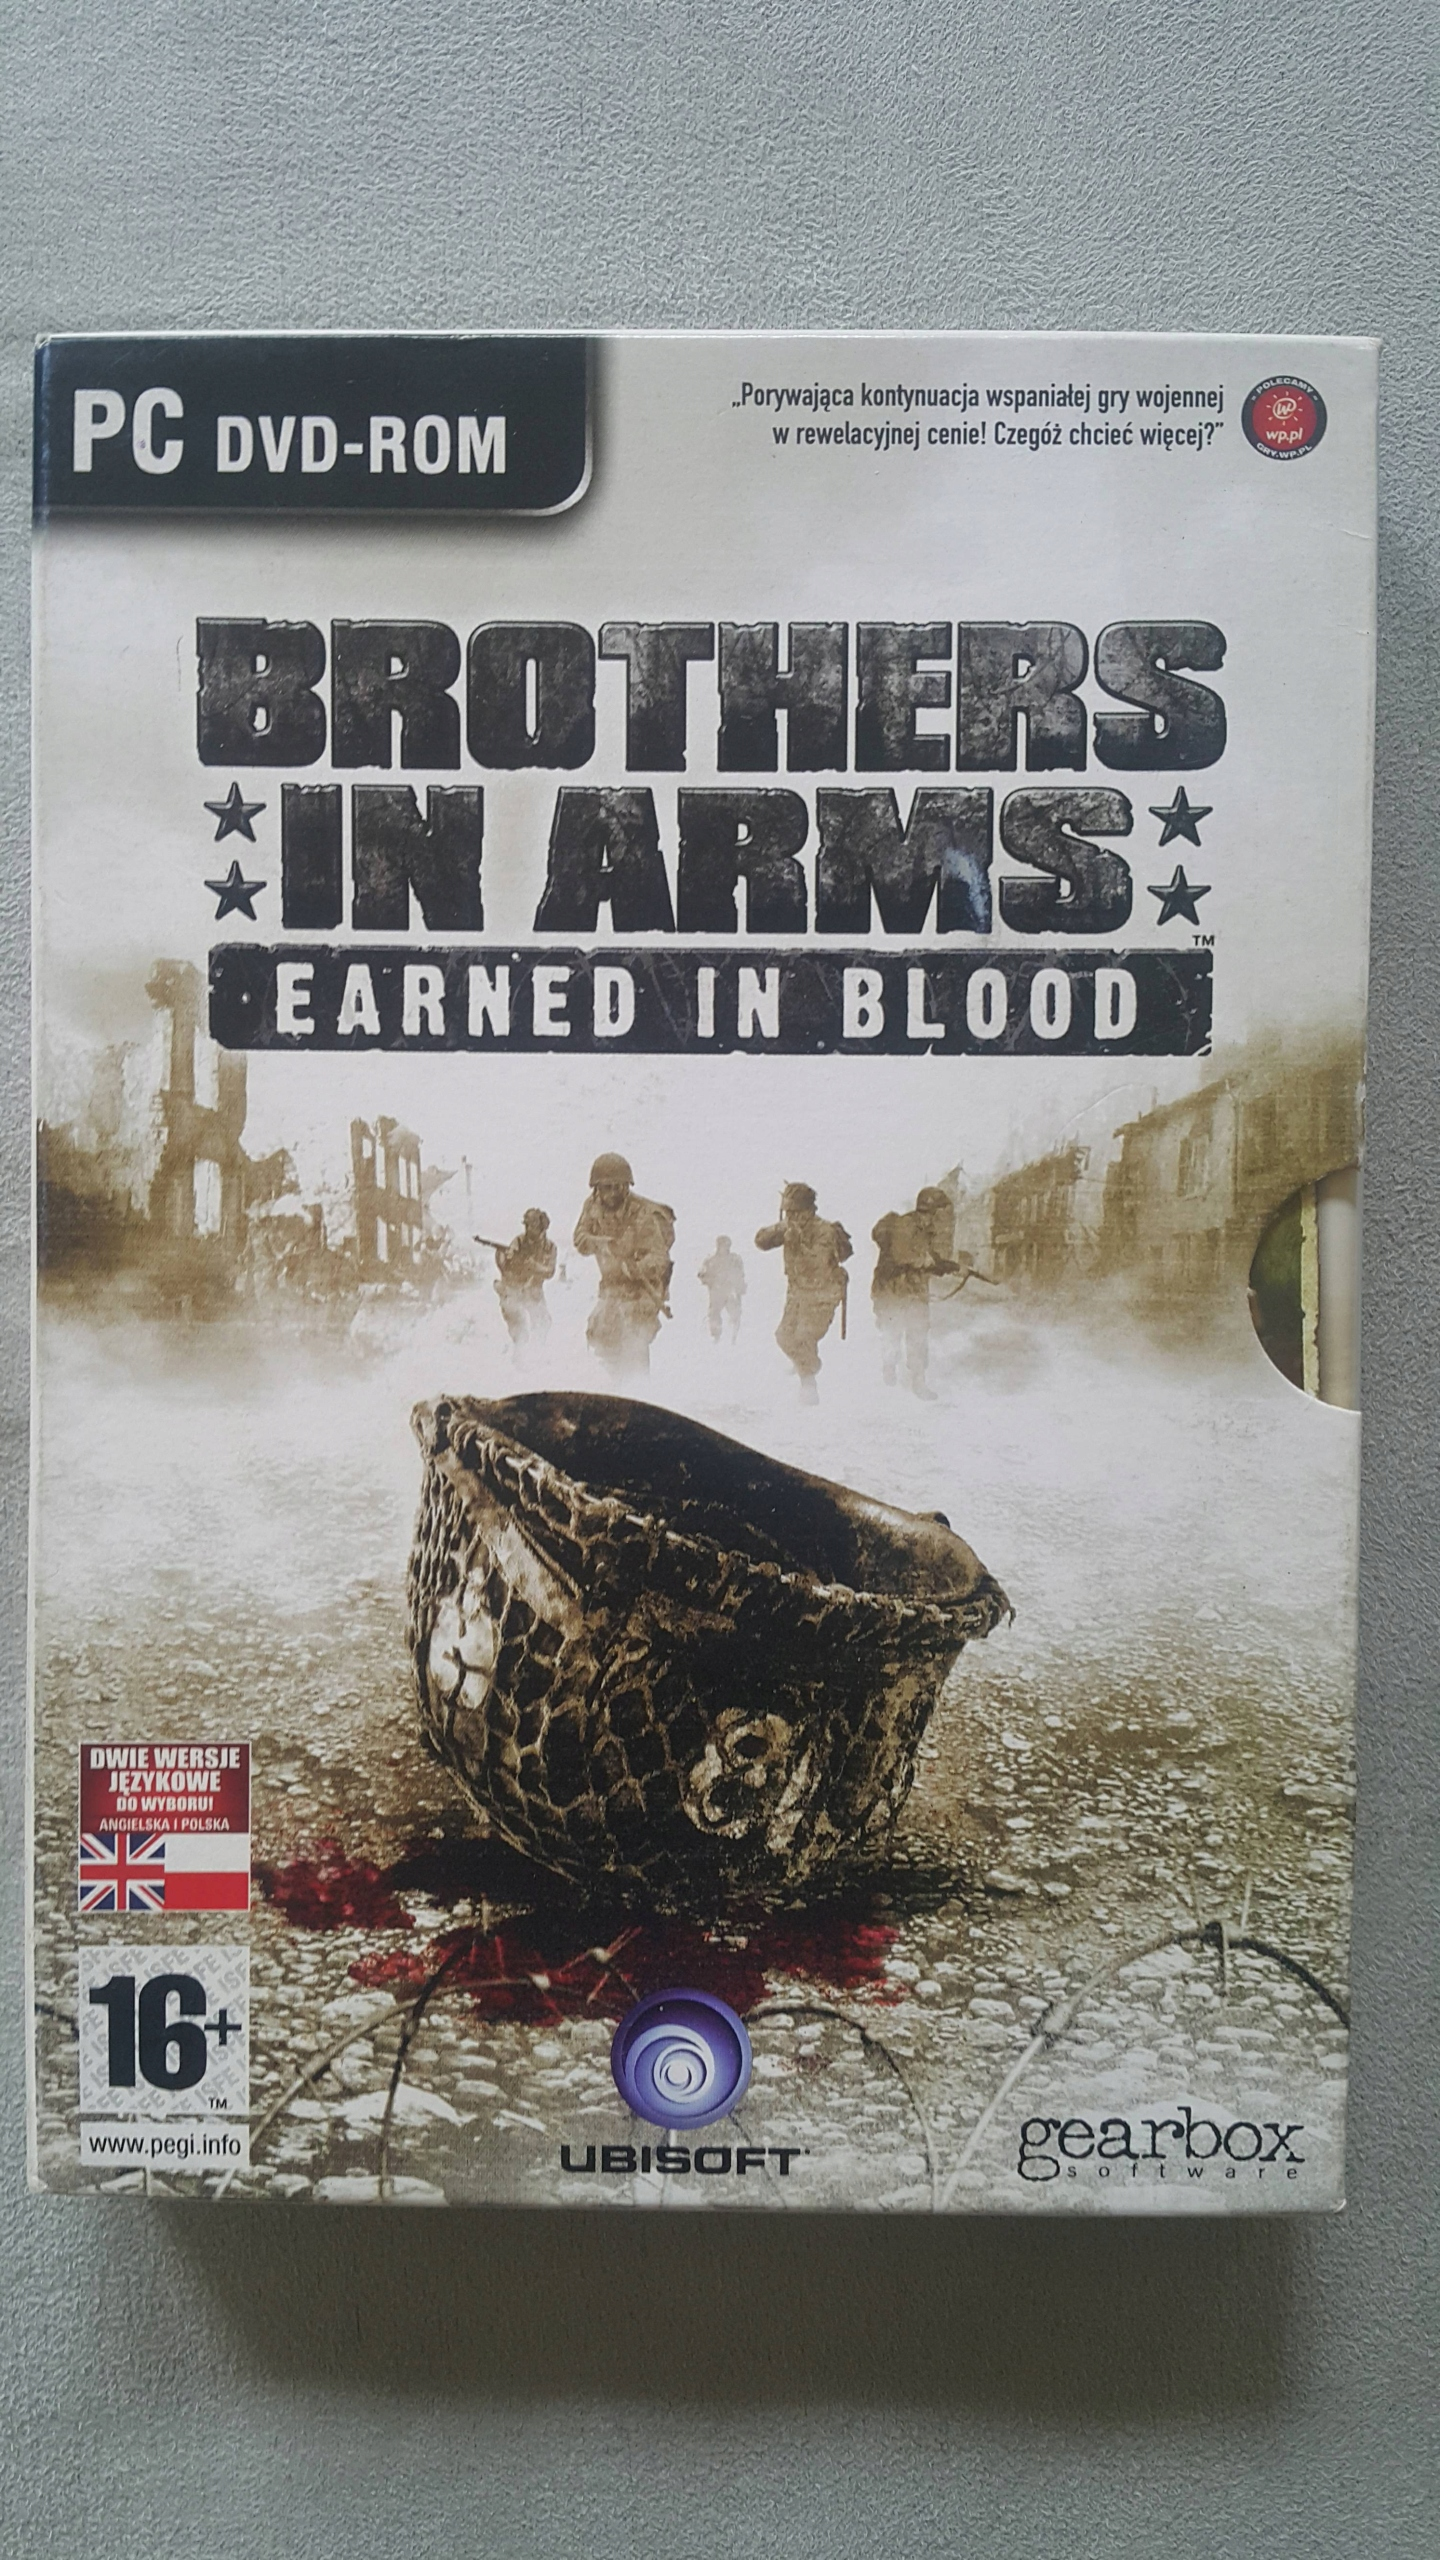 Brothers in Arms Earned in Blood - premierowa